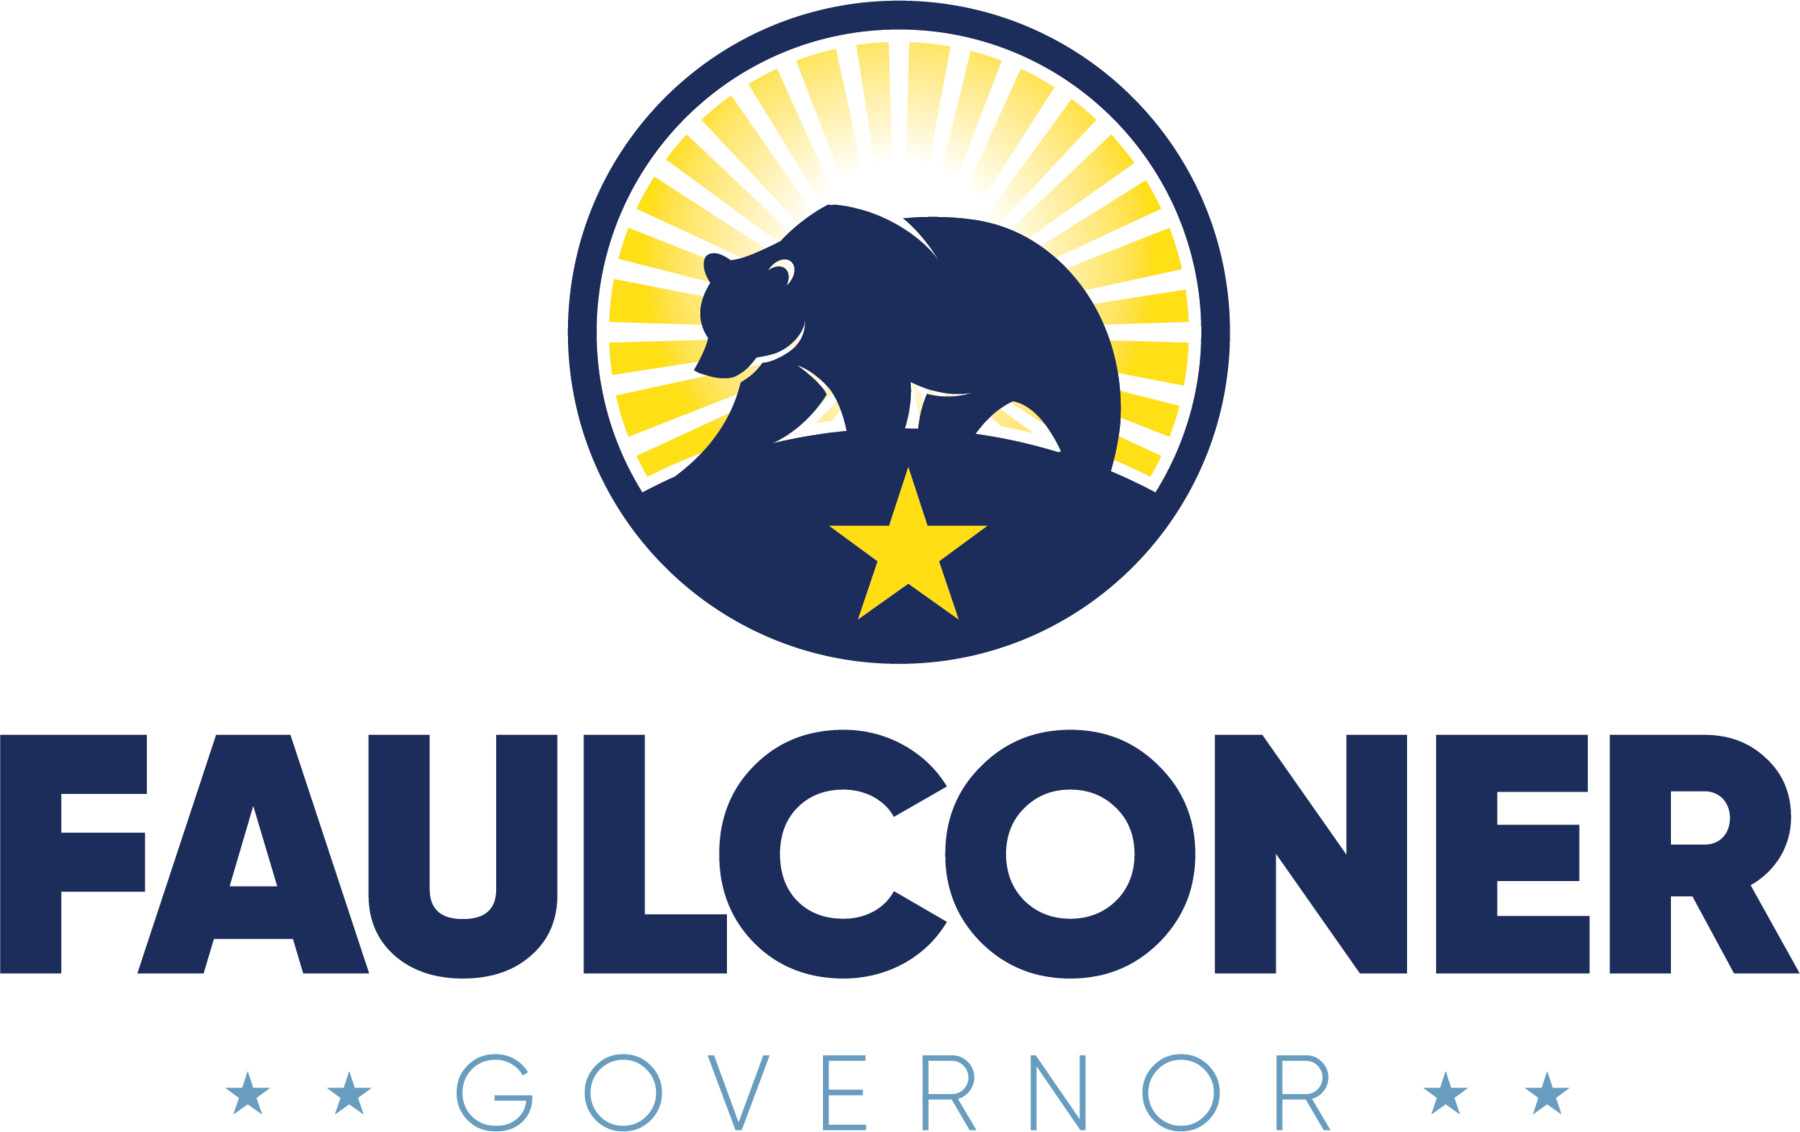 Faulconer for Governor 2022: PG_WebsiteSpanish